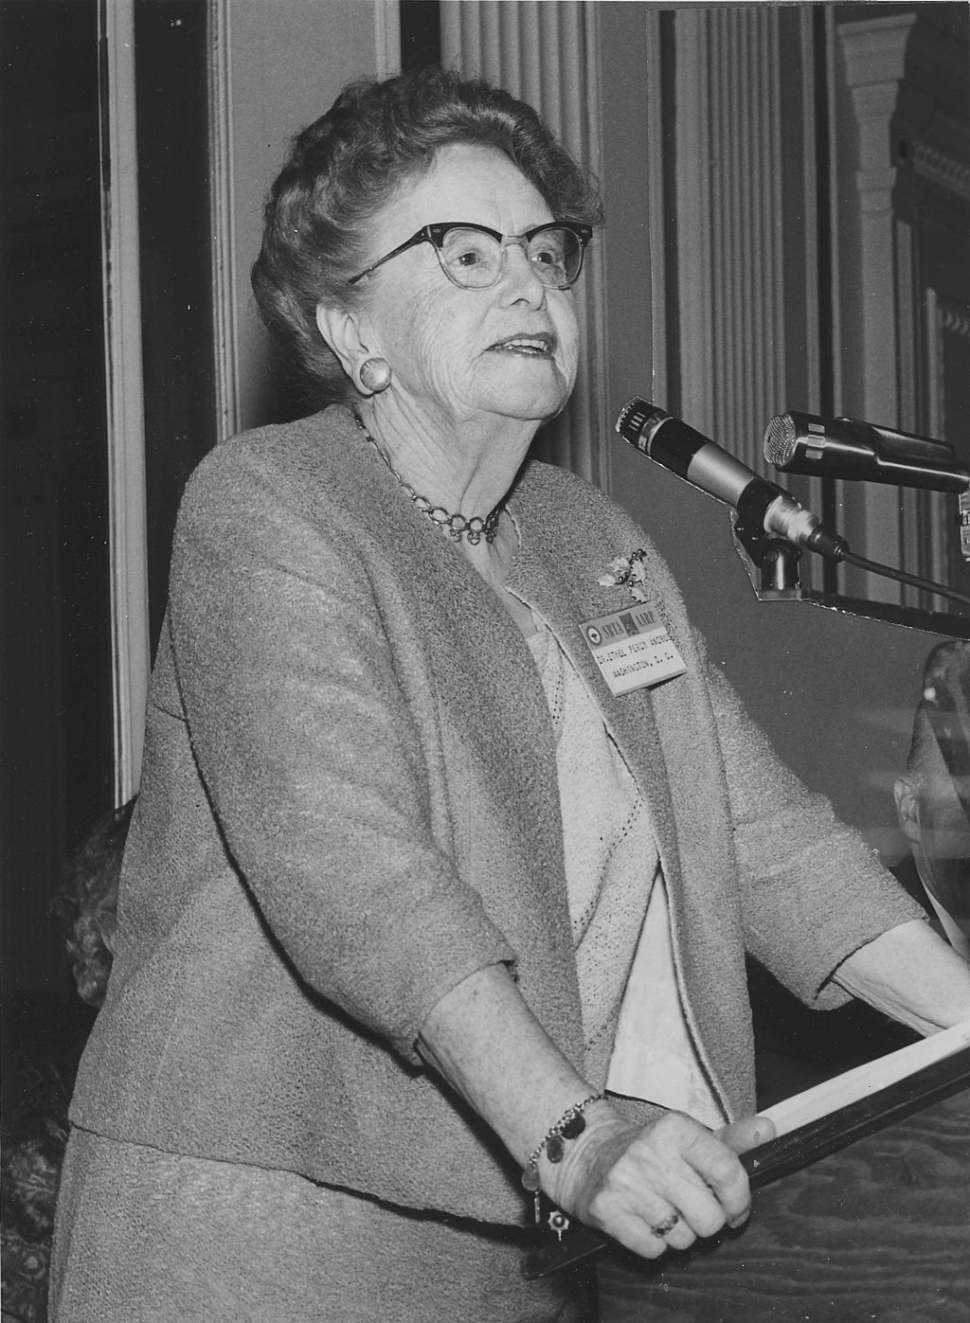 Dr. Ethel Percy Andrus - Educator, Social Innovator, Humanitarian. Dr. Ethel Percy Andrus, Founder and President of NRTA-AARP, testifying before the Kefauver Committee on Hearing Aids, April 19, 1962. Photo courtesy of Archives of Ojai Valley Museum.